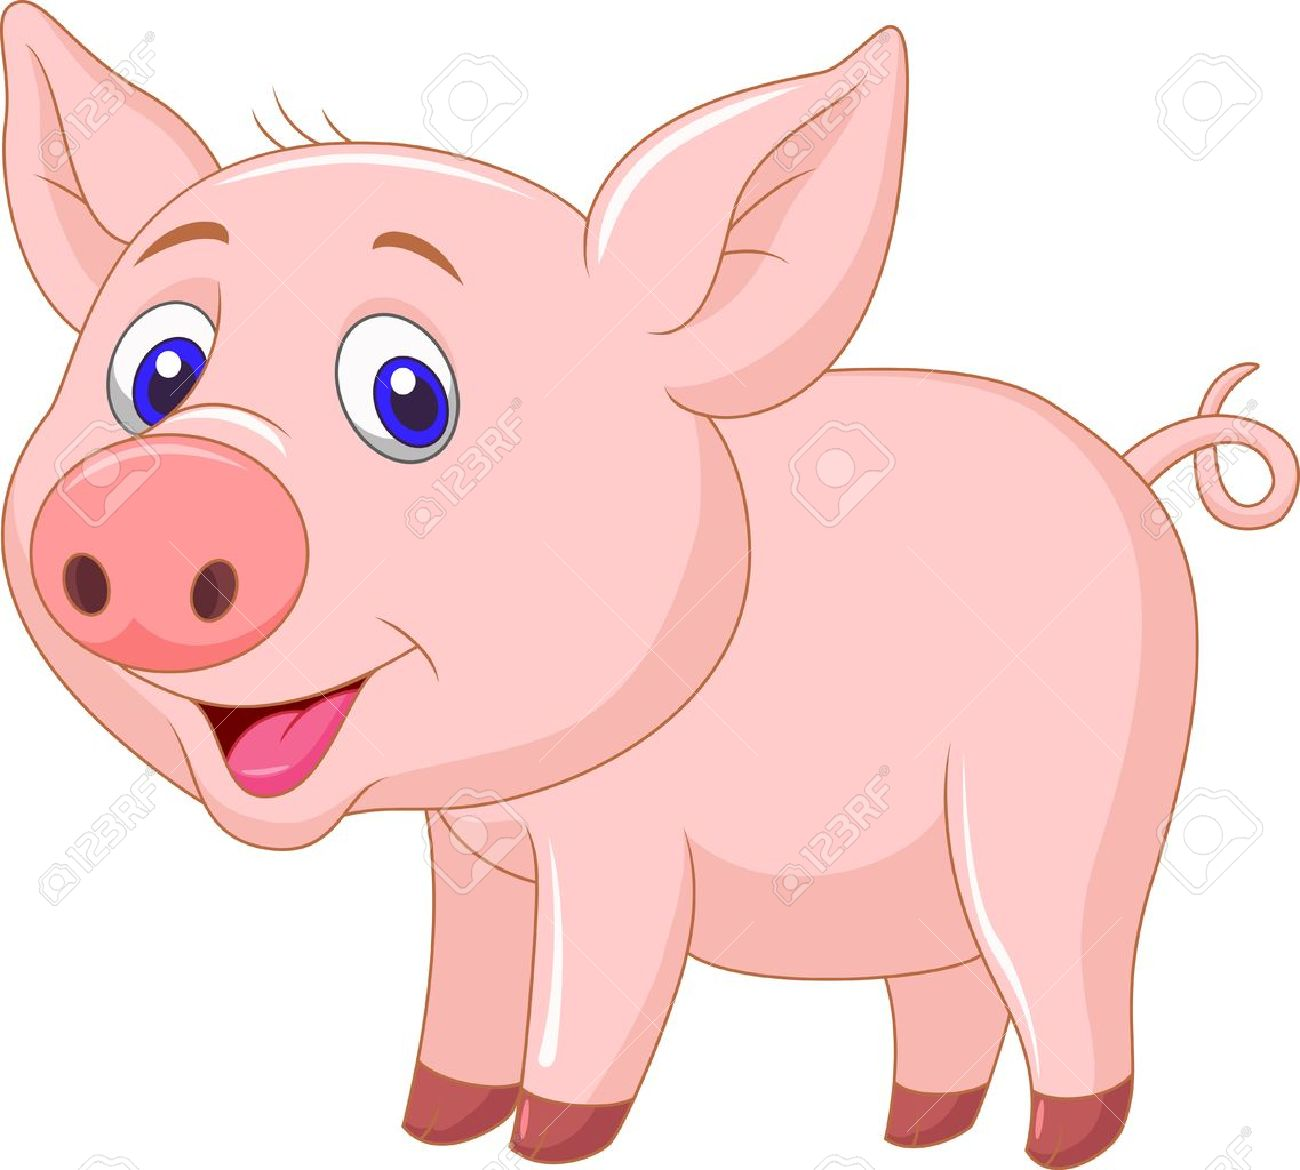 Pig clip art simple. Clipart of cartoon pigs